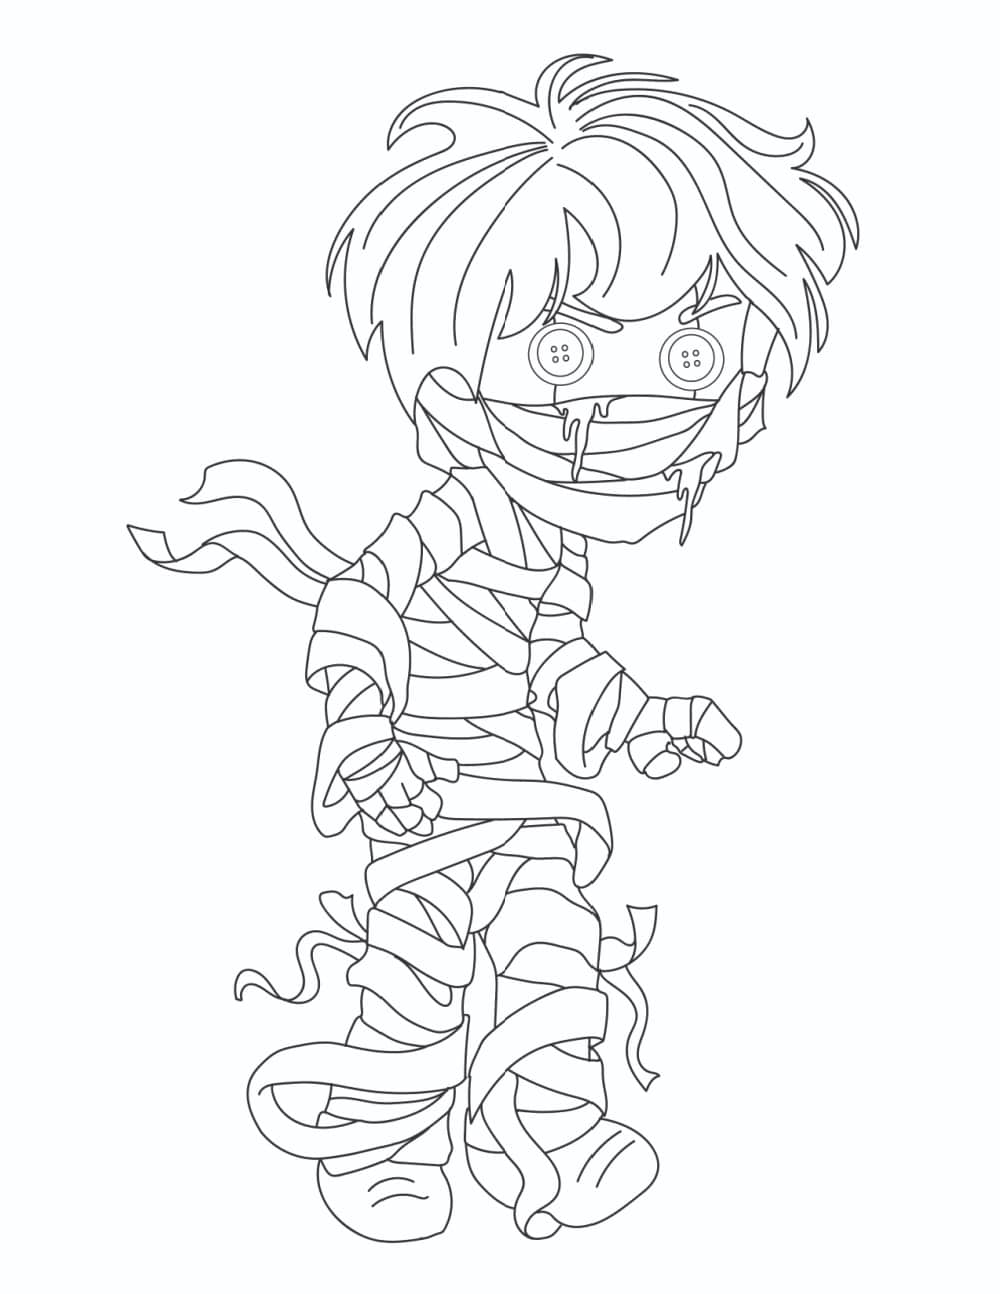 If you're looking for free printable scary monster coloring pages, look no further than this one featuring a mummy boy with button eyes!